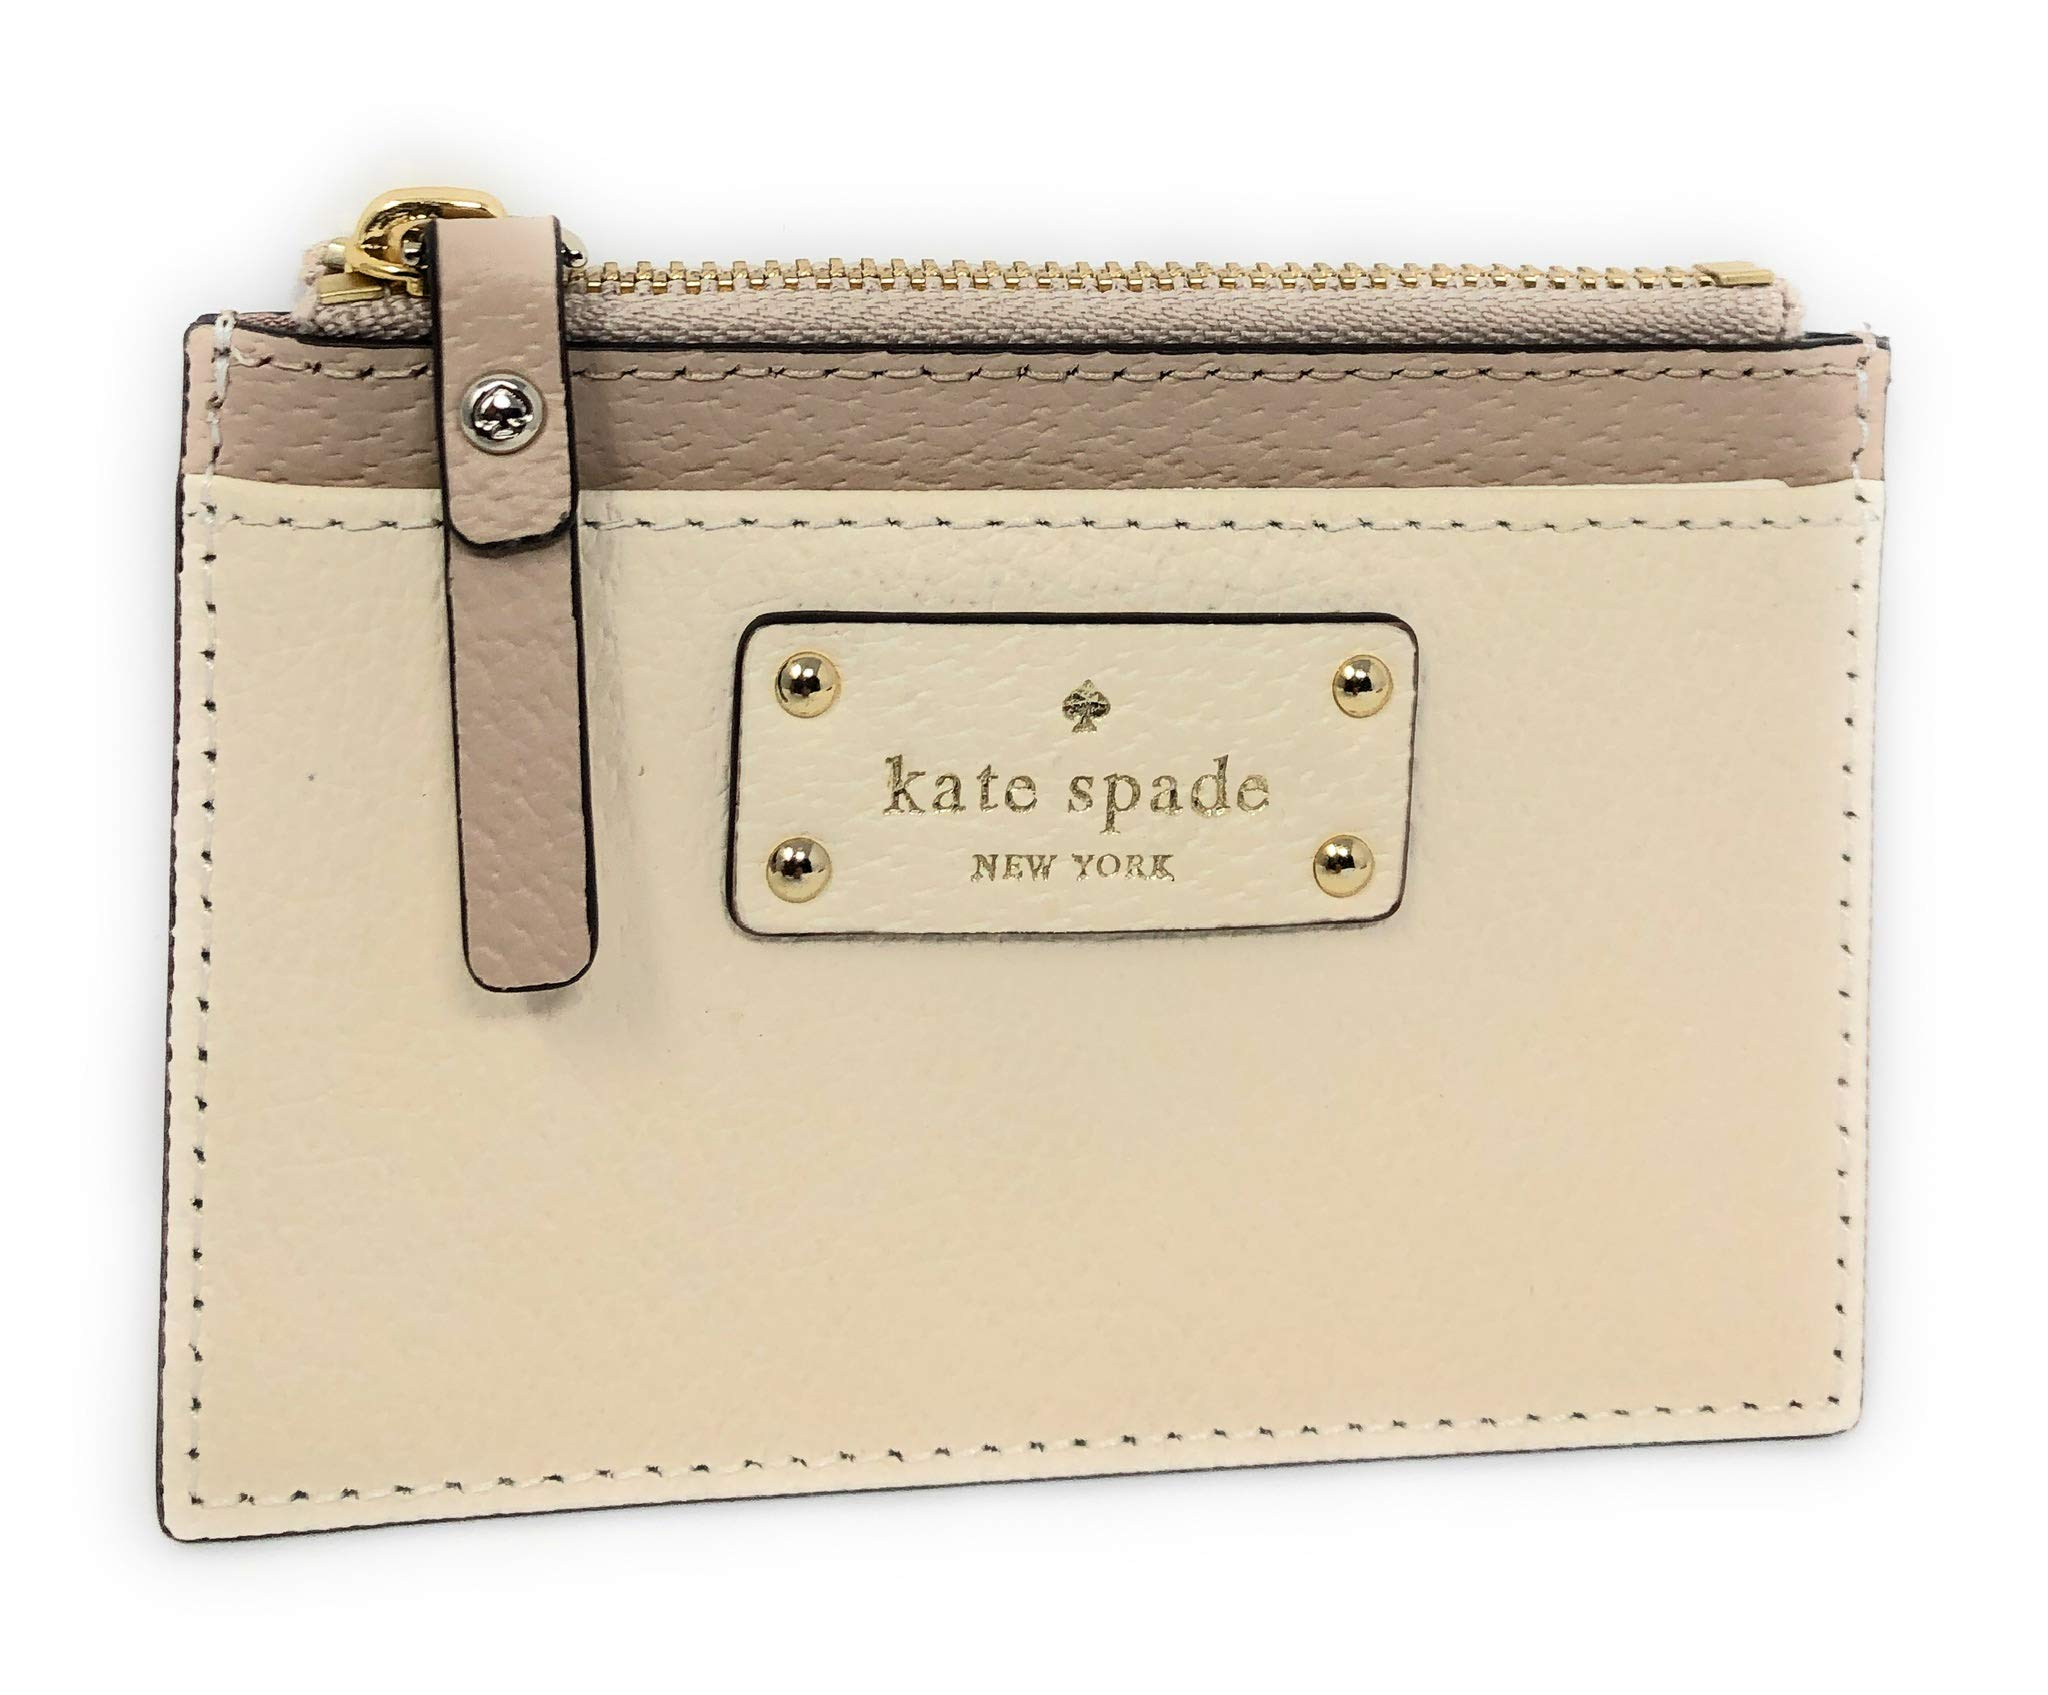 Kate Spade New York Adi Wallet Coin Purse Business Credit Card Holder Case Beige